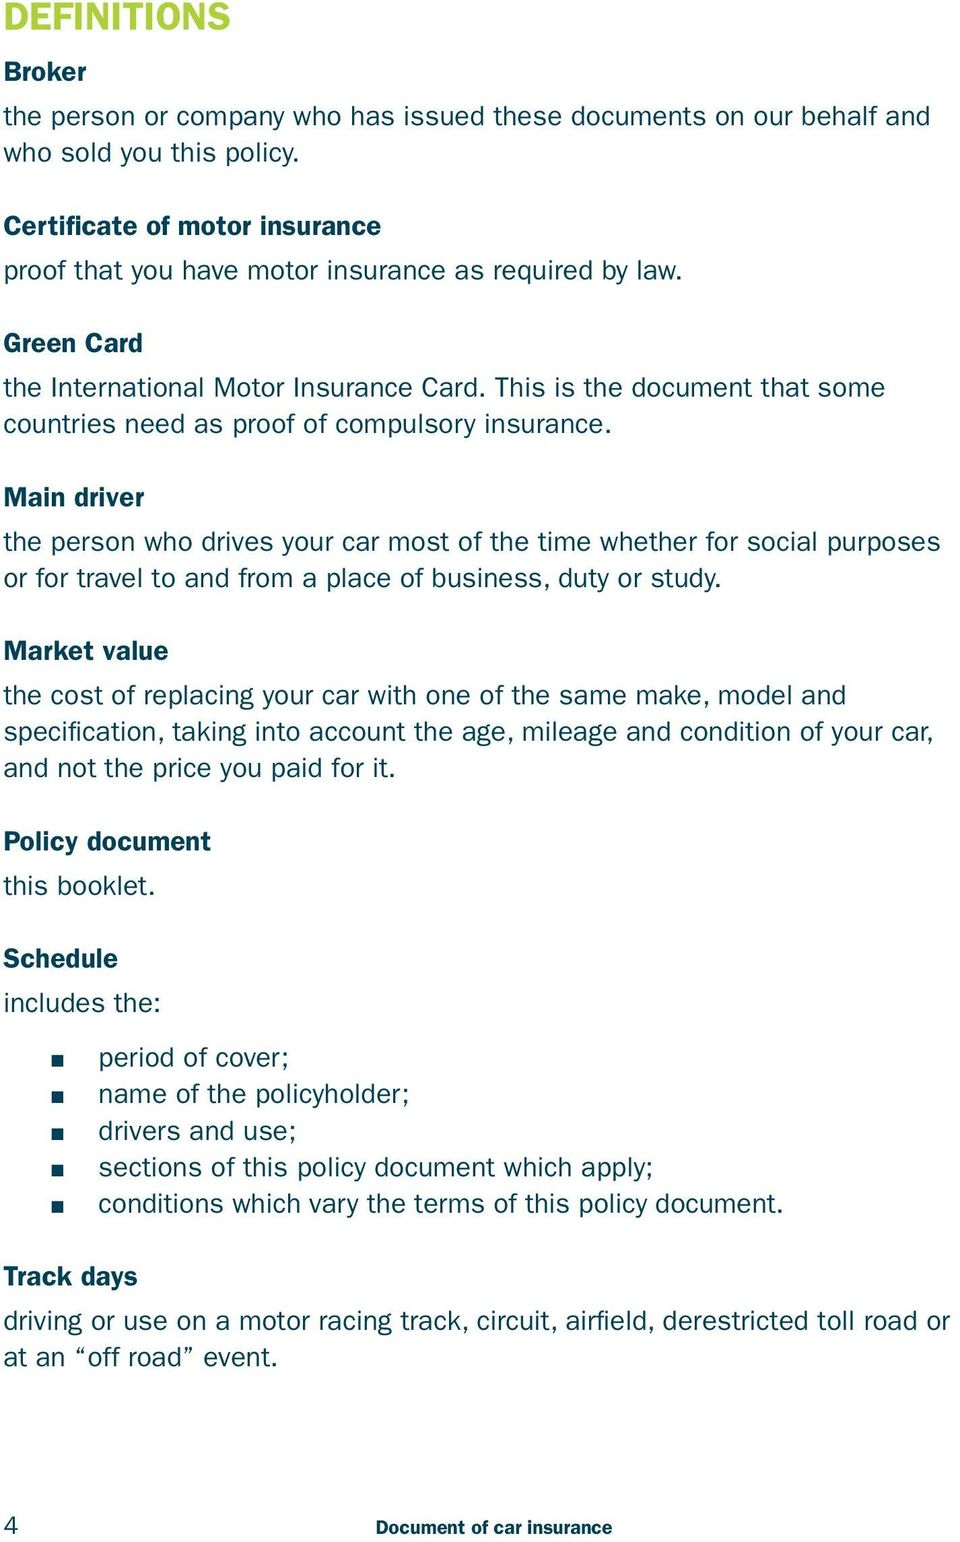 This is the document that some countries need as proof of compulsory insurance.